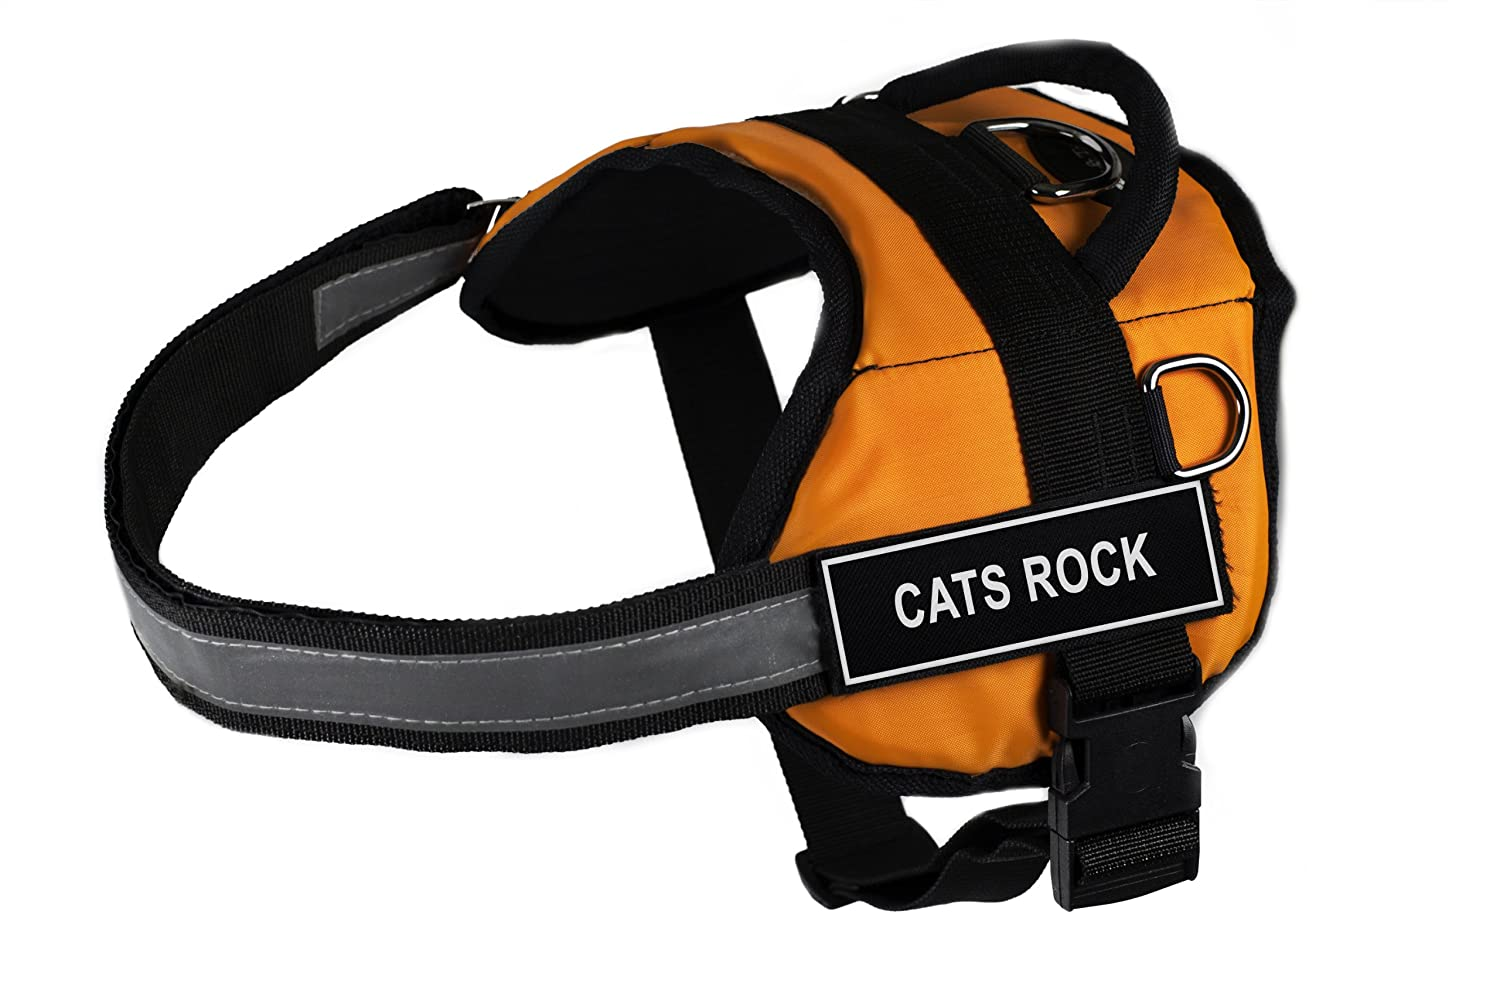 Dean & Tyler DT Works Fun Harness Cats Rock Pet Harness, Large, Fits Girth Size 34-Inch to 47-Inch, orange Black